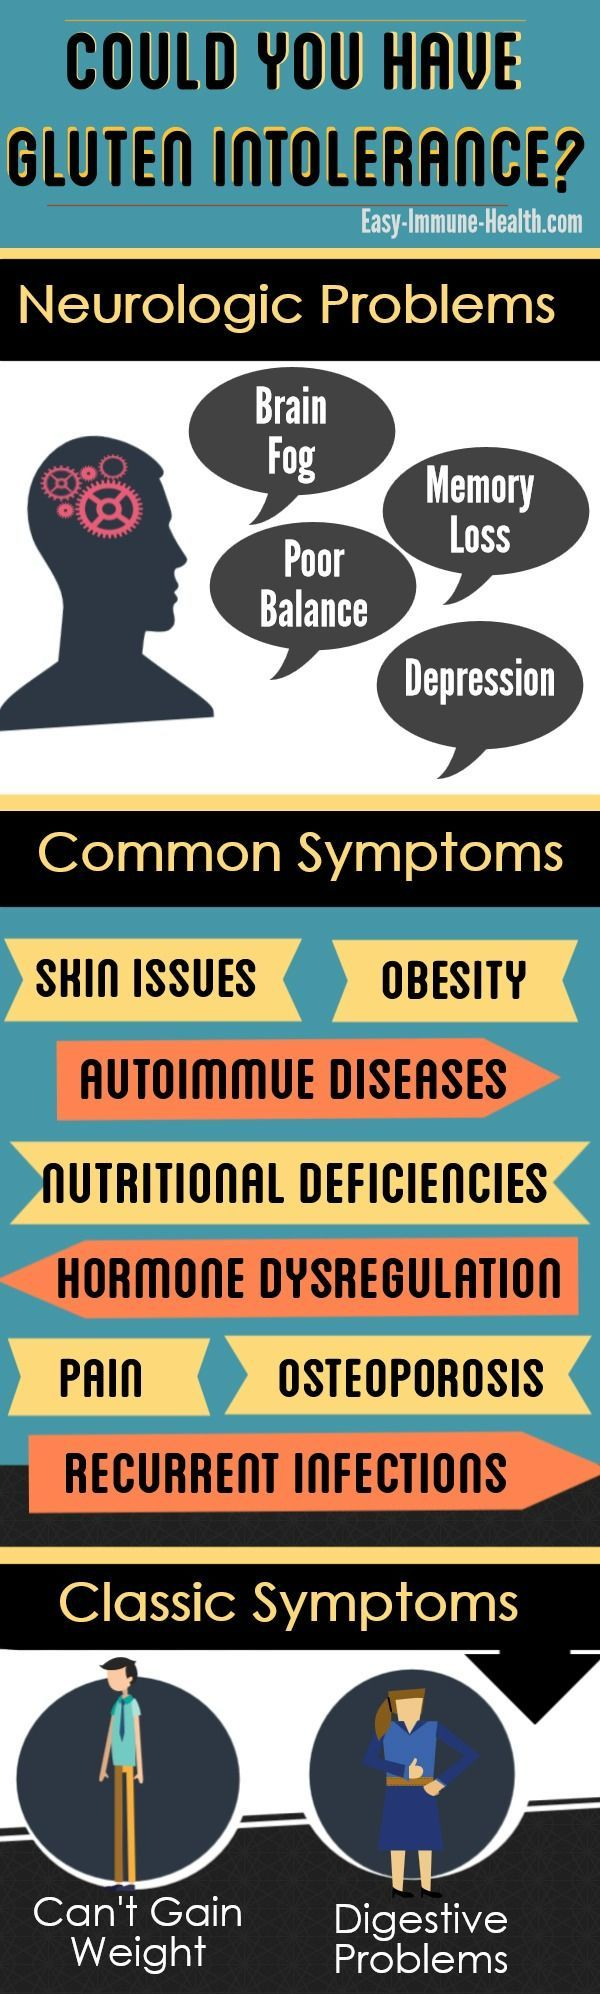 Could you have symptoms of gluten intolerance? You might be surprised at the symptoms that might indicate gluten sensitivity.